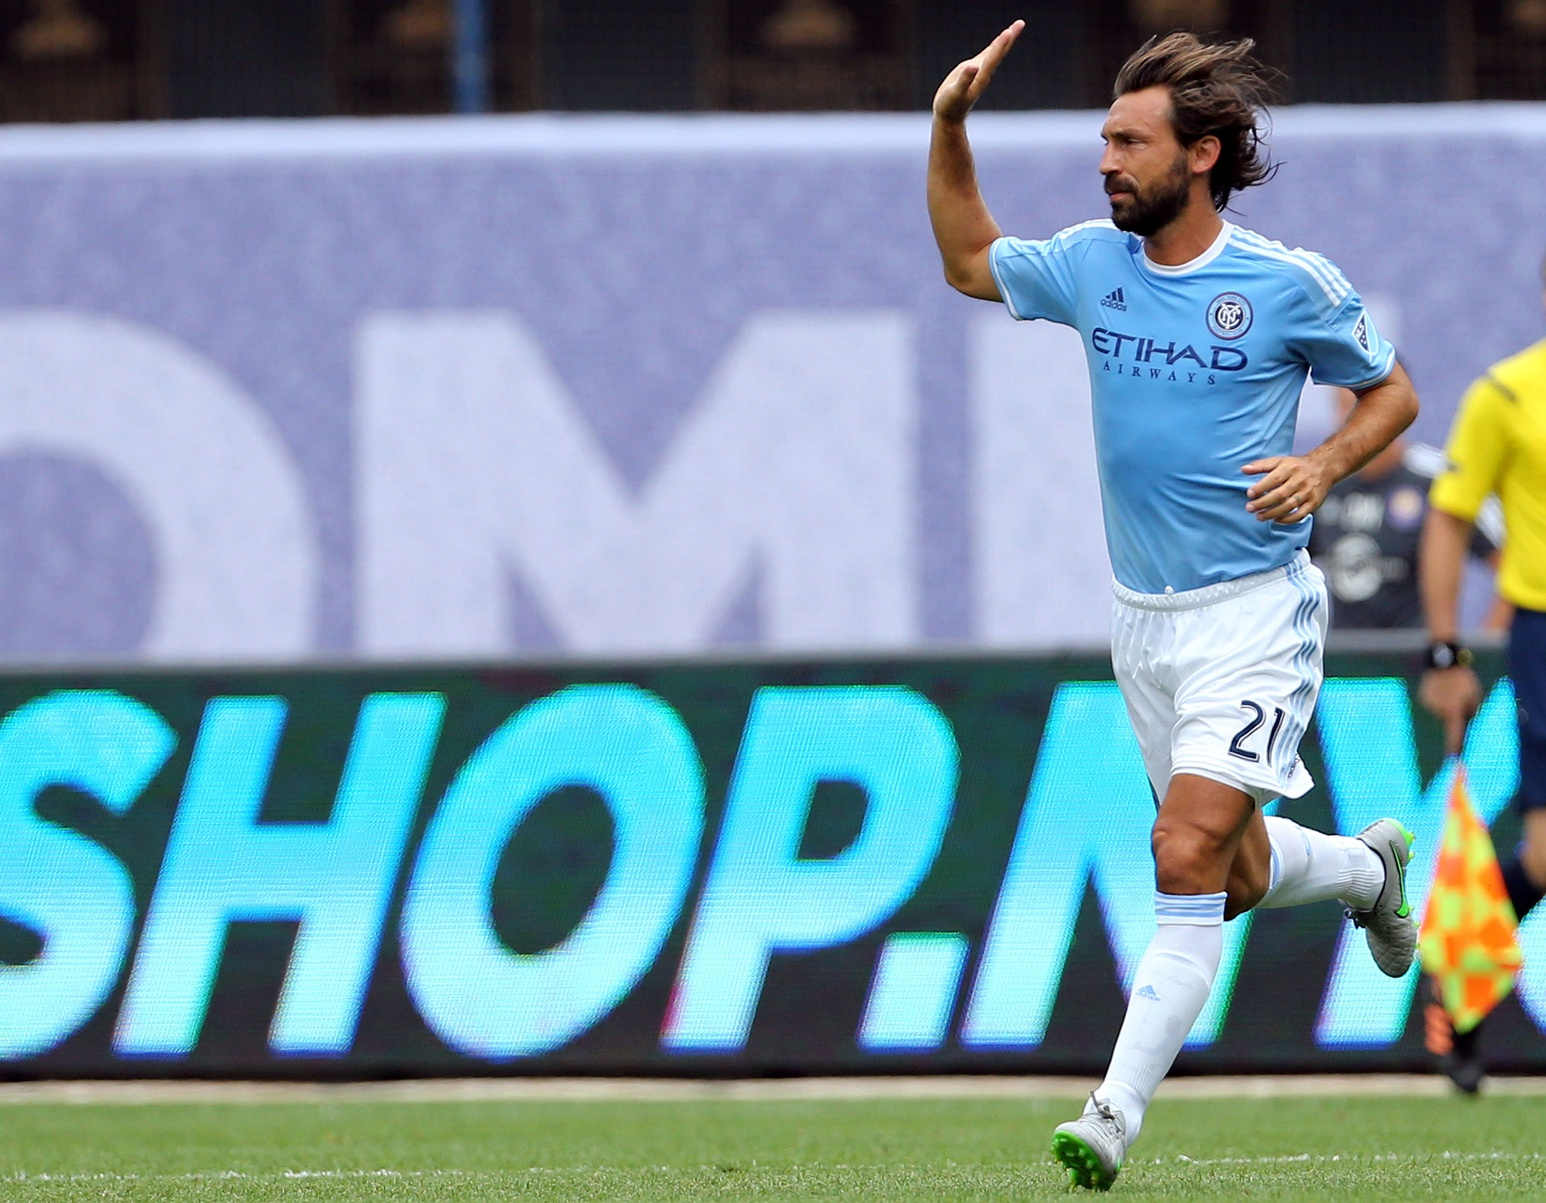 Finding a solution to the Andrea Pirlo problem in MLS By Steve